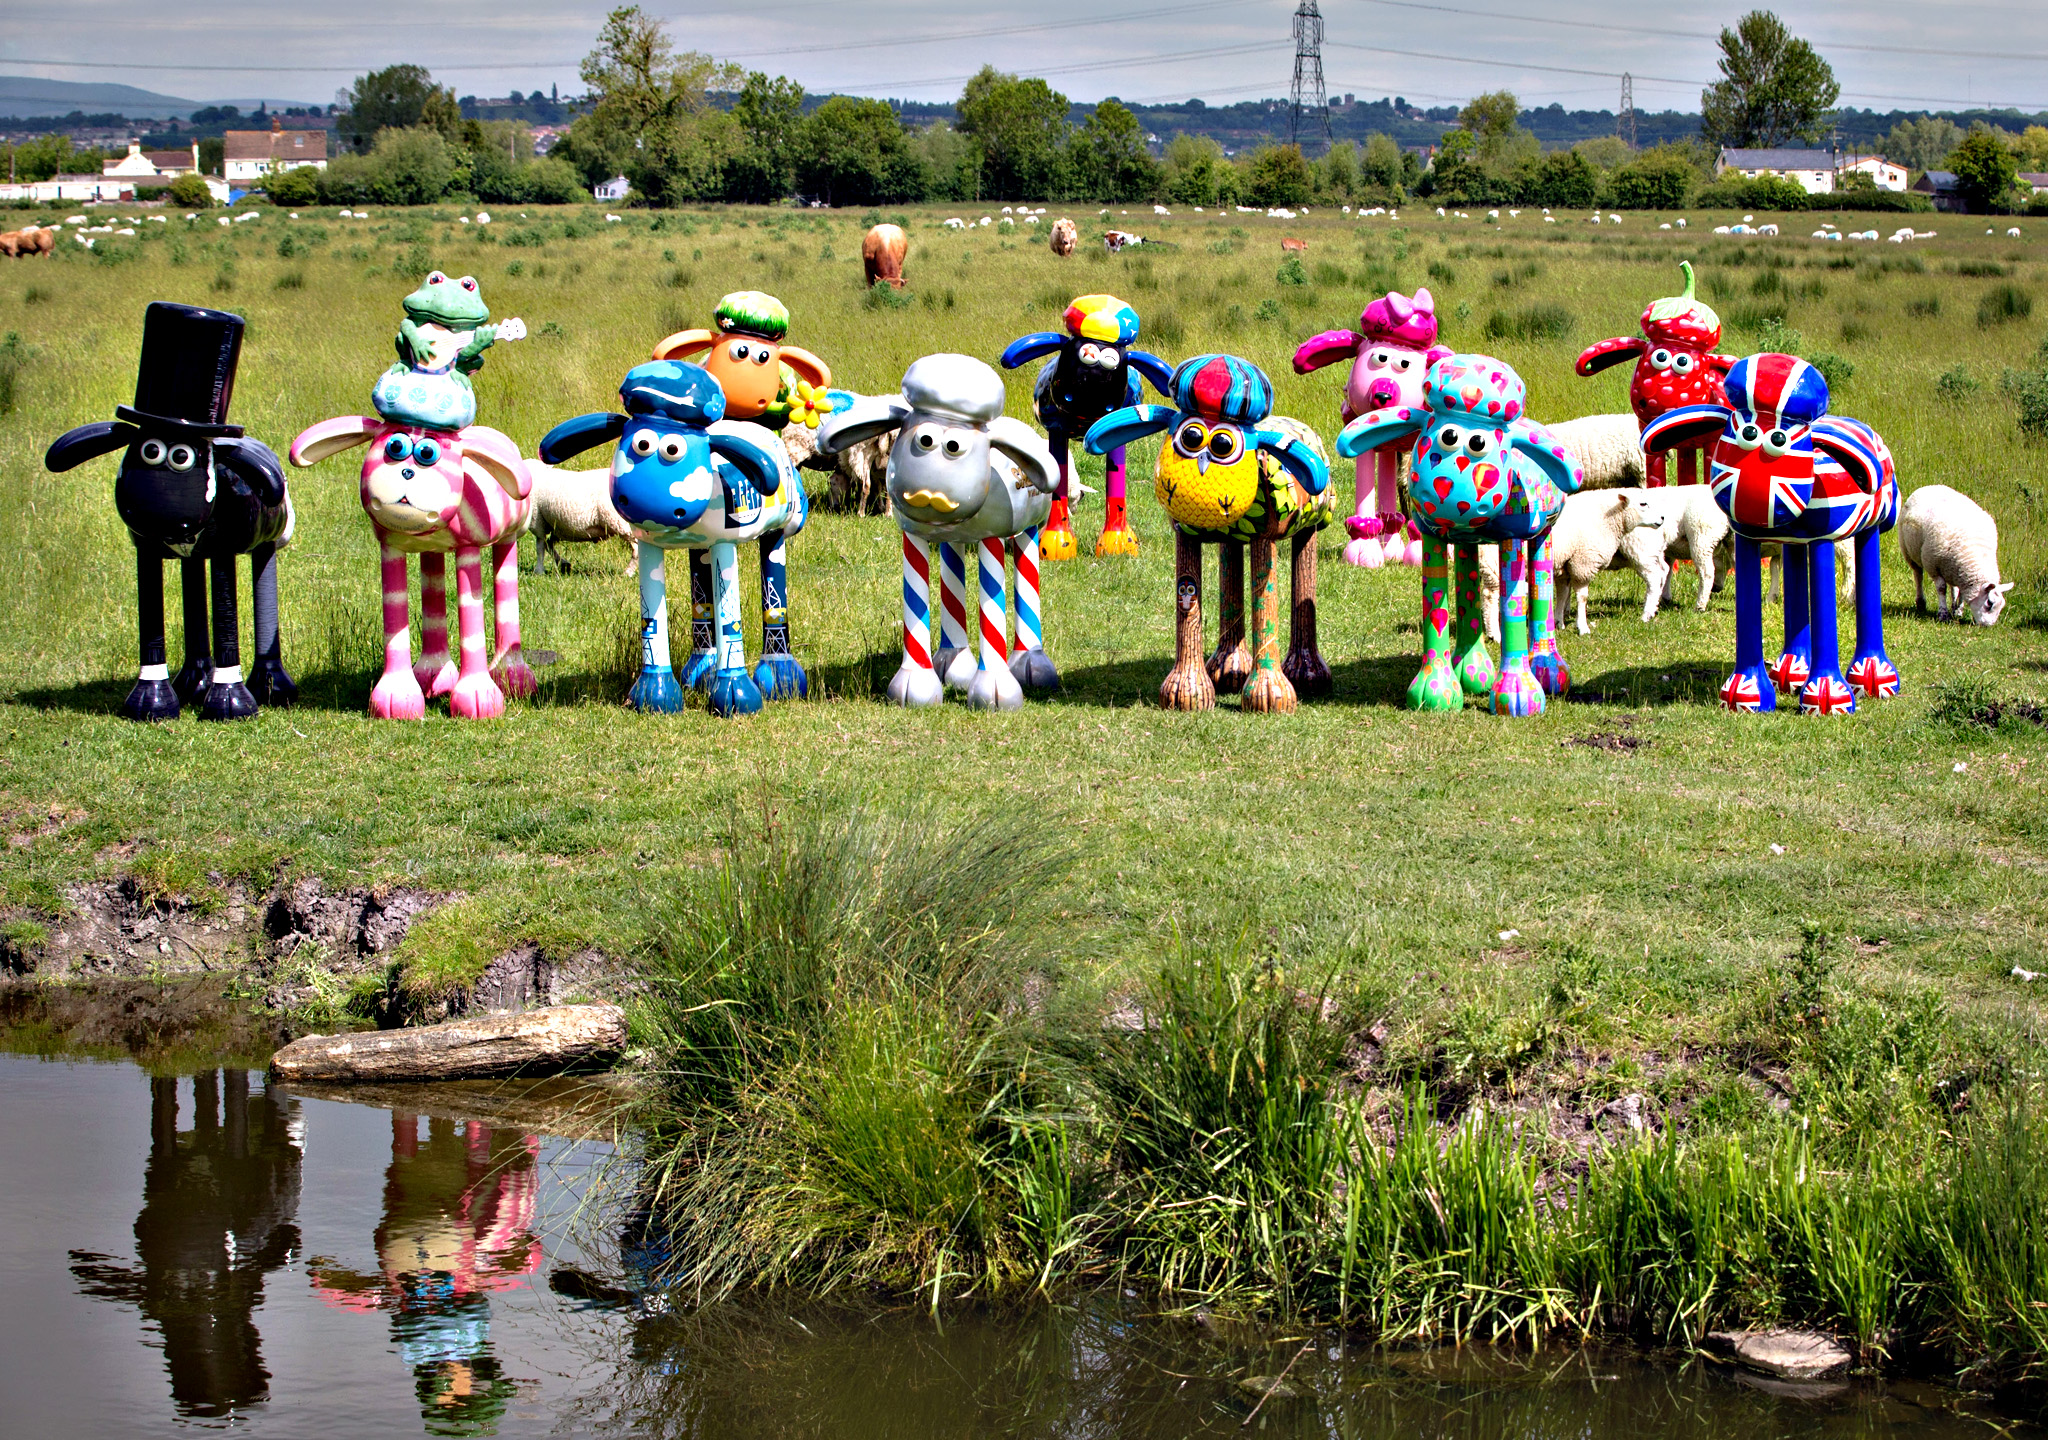 Sheep in a field graze close to some of the Shaun the Sheep sculptures ahead of their delivery to Bristol on a farm near Goldcliff on Wednesday in Newport, Wales. From July 6 to August 31 the children's charity is bringing 70 Shaun the Sheep sculptures to green spaces across Bristol and later in the year the flock will go to auction with funds raised going to The Grand Appeal, the Bristol's children's hospital charity